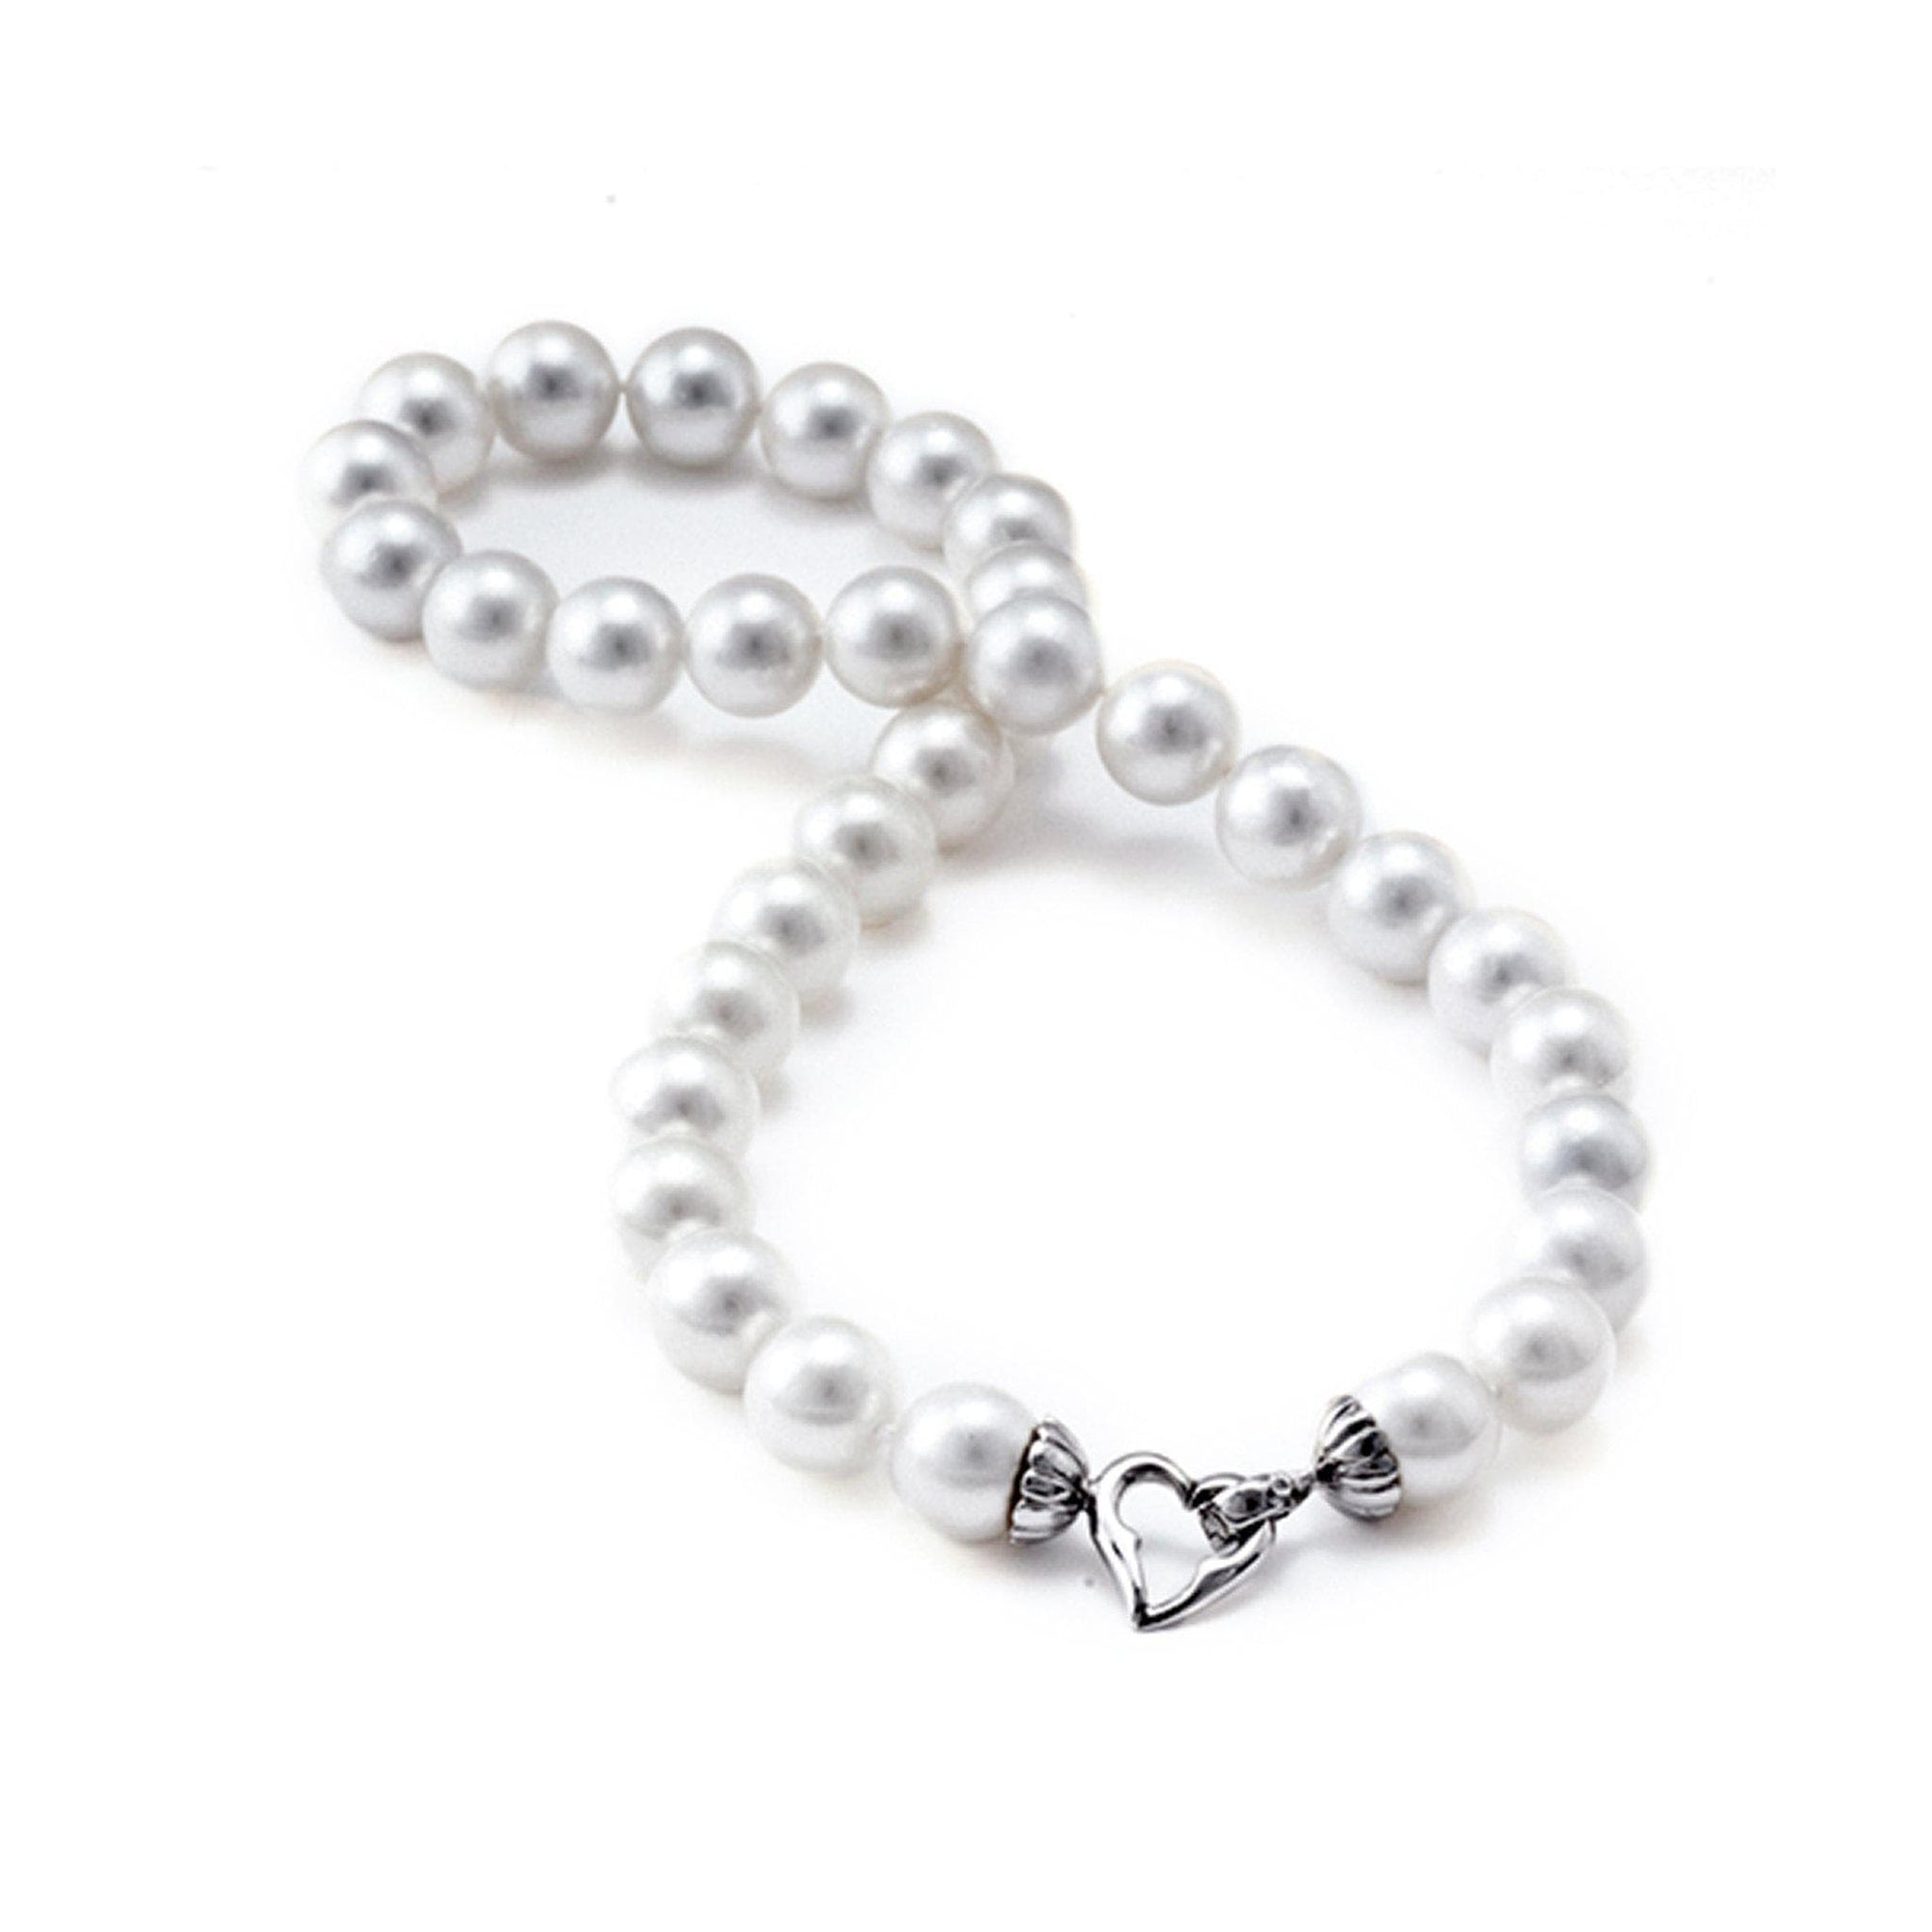 South Sea White Pearl Strand in 14K White Gold (11-12mm)